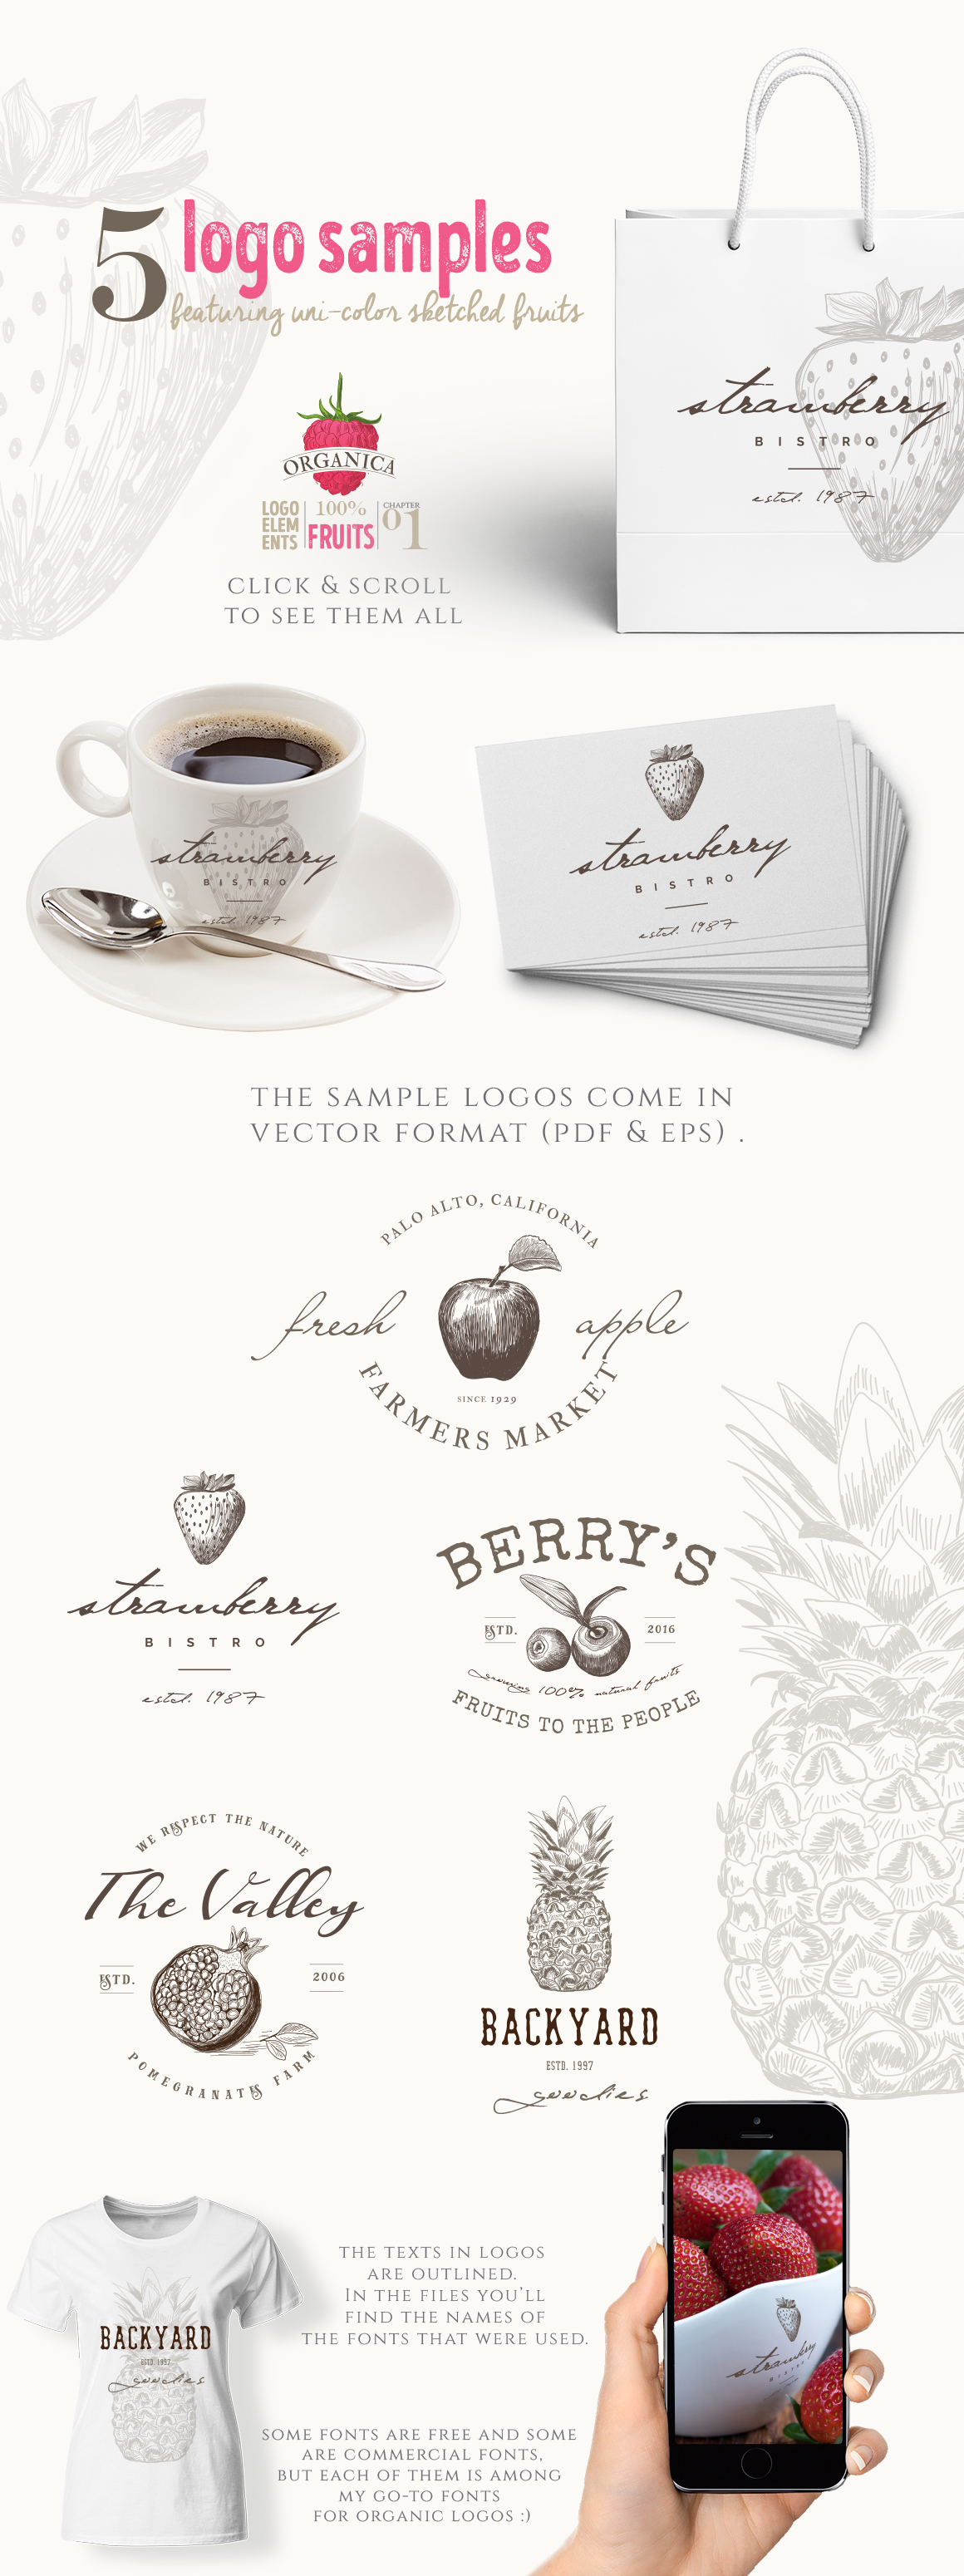 4 IN 1 ORGANIC LOGO ELEMENTS 60% OFF example image 11